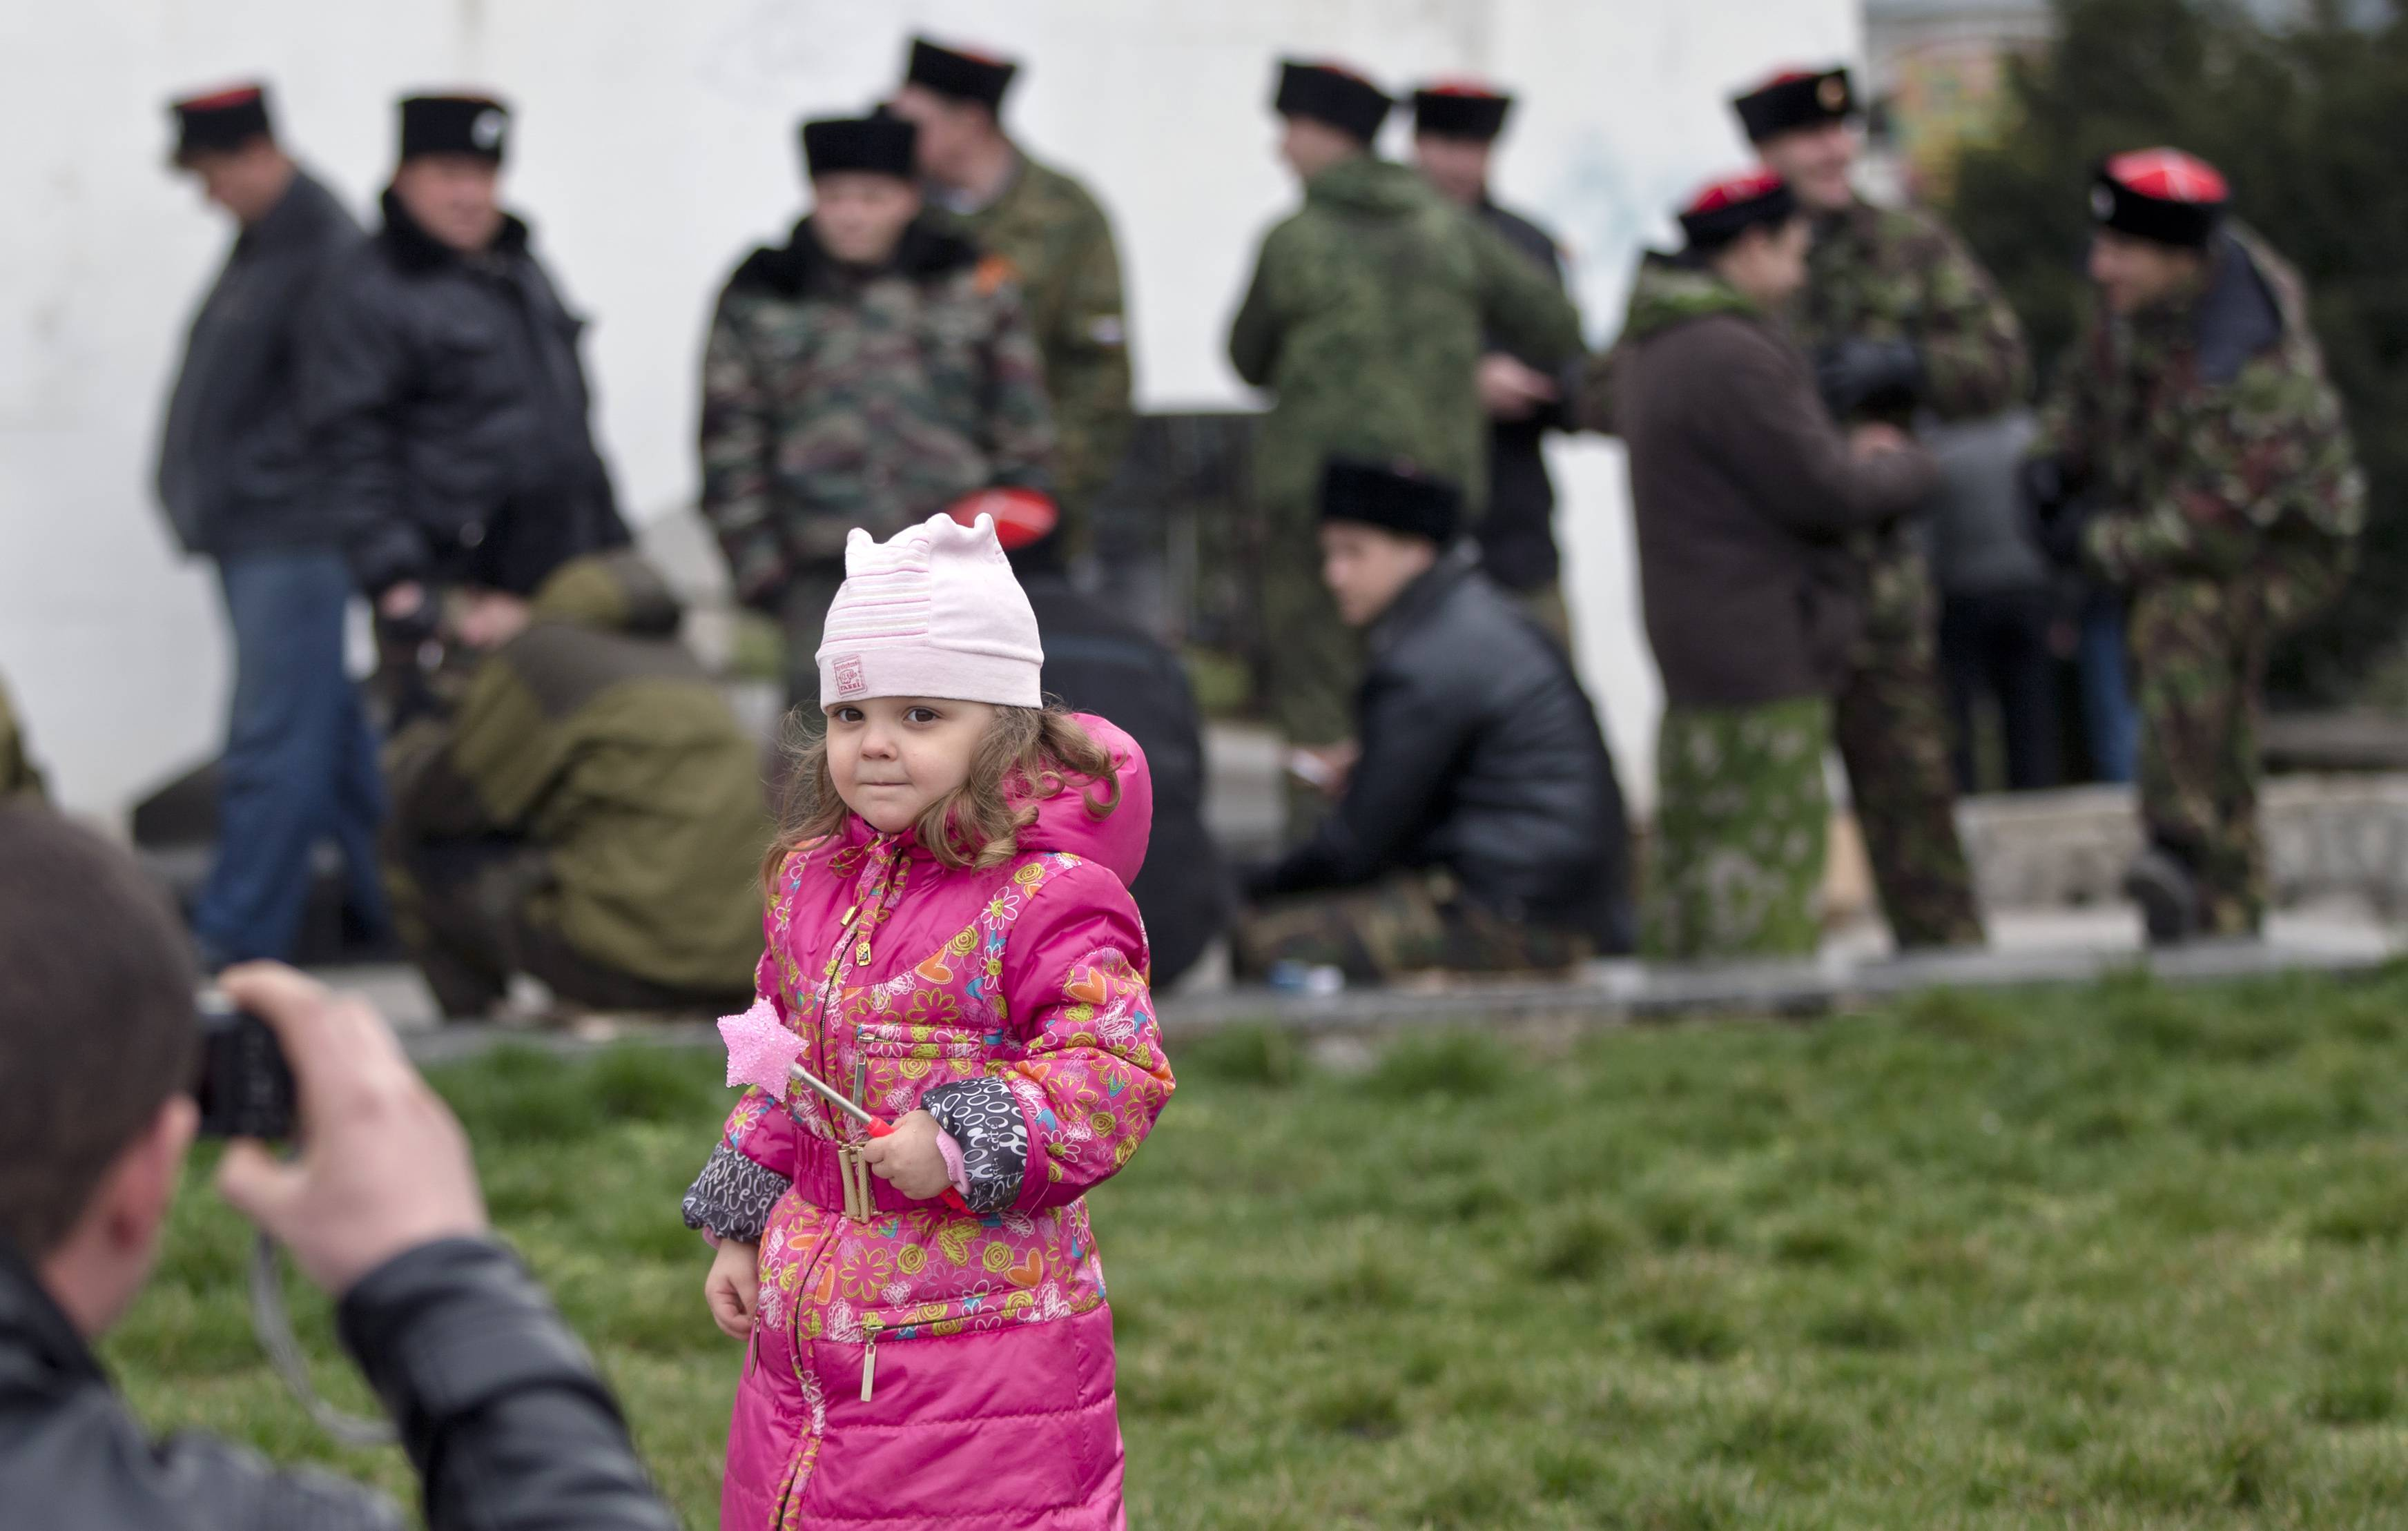 A man photographs a child Saturday with a group of Cossacks in the background in Simferopol, Ukraine.